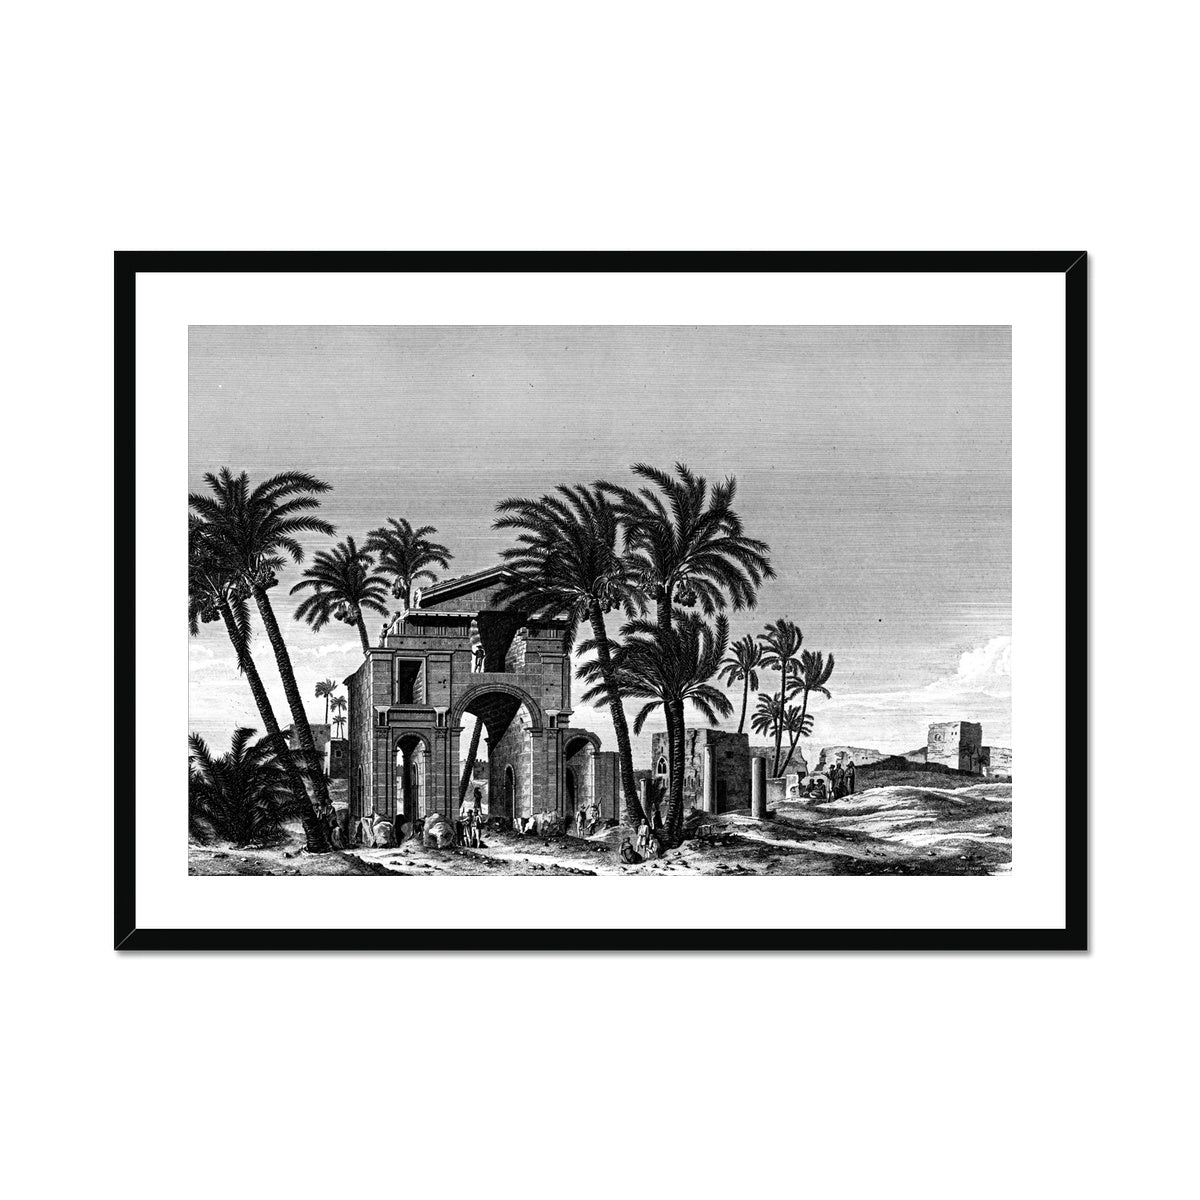 Triumphal Arch View - Antinoöpolis Egypt -  Framed & Mounted Print